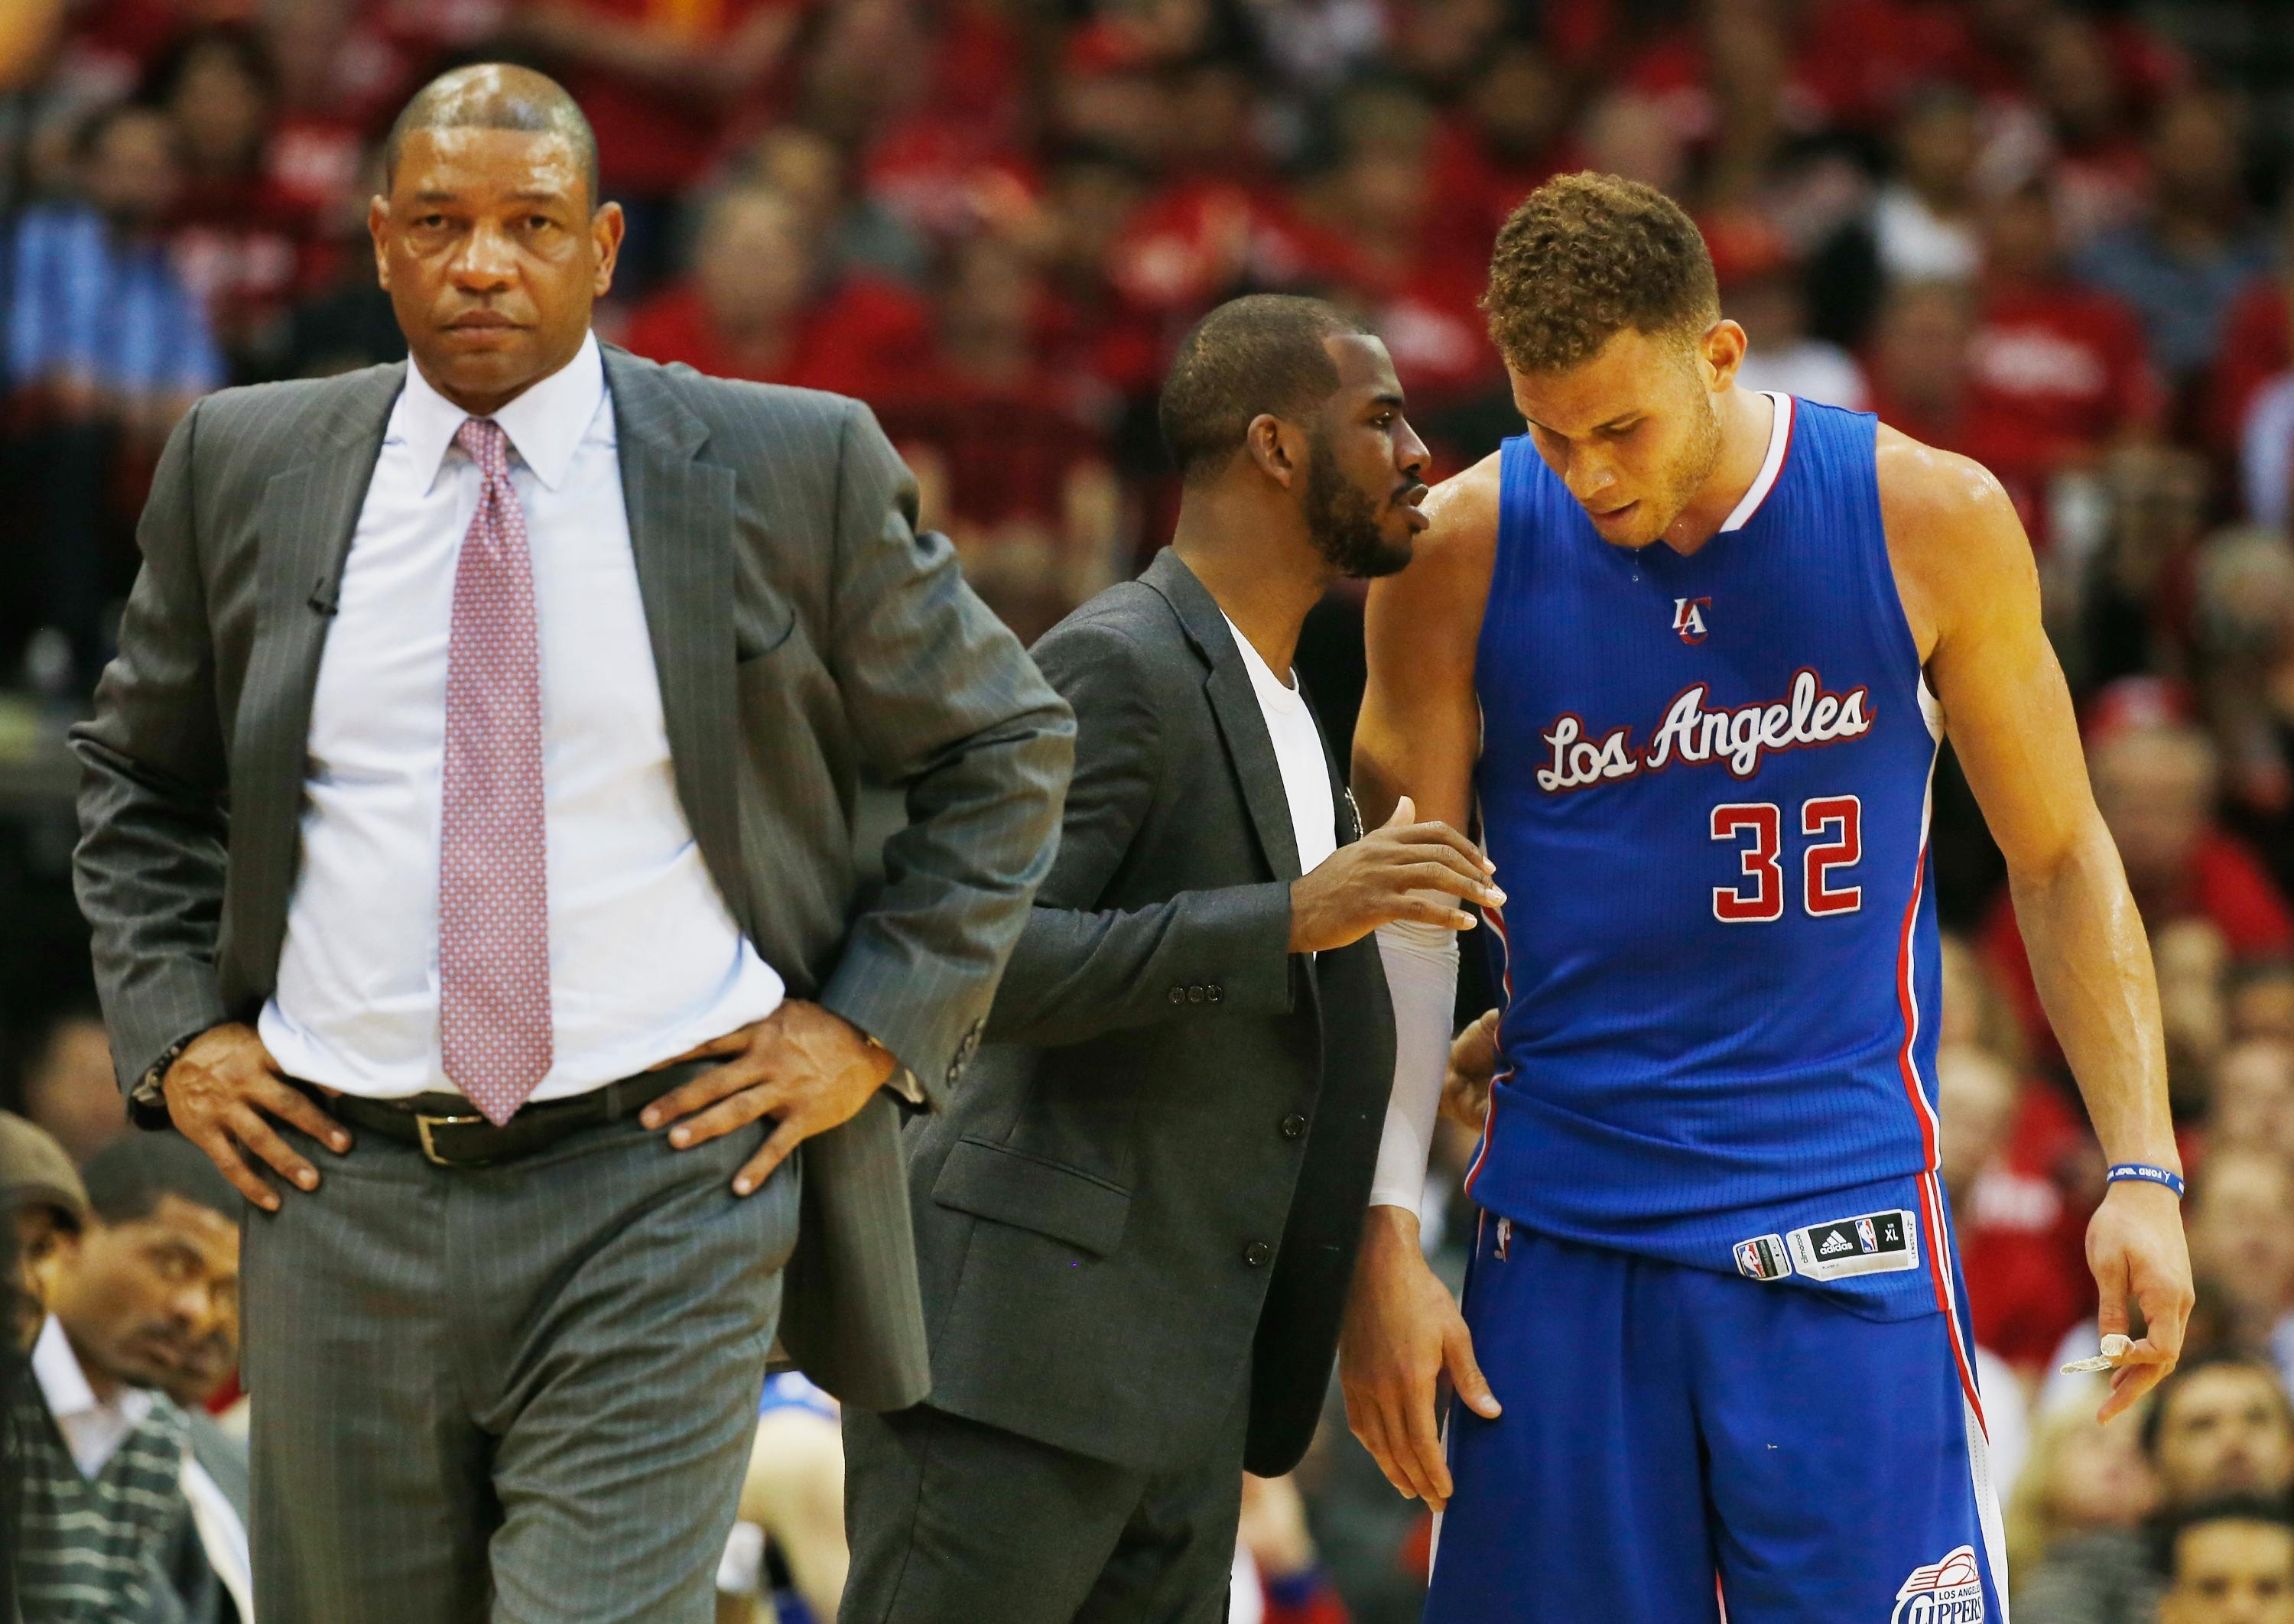 Doc Rivers says the Clippers roster could be disbanded if they don't win a title